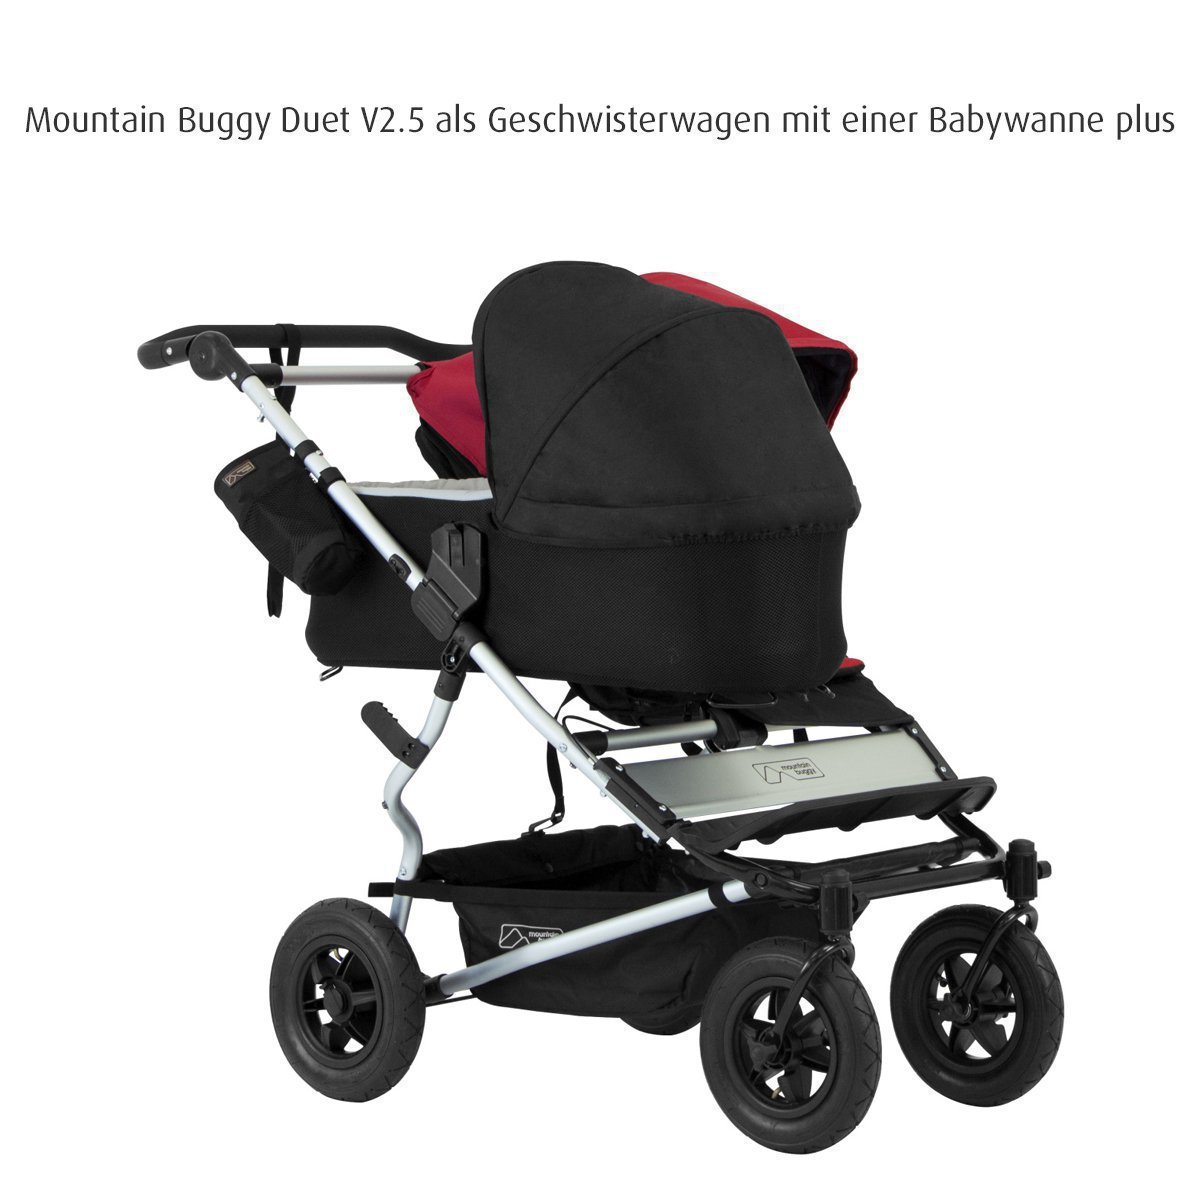 Mountain Buggy Carrycot Plus for Duet Double Stroller with Sunhood, Flint by Mountain Buggy (Image #2)